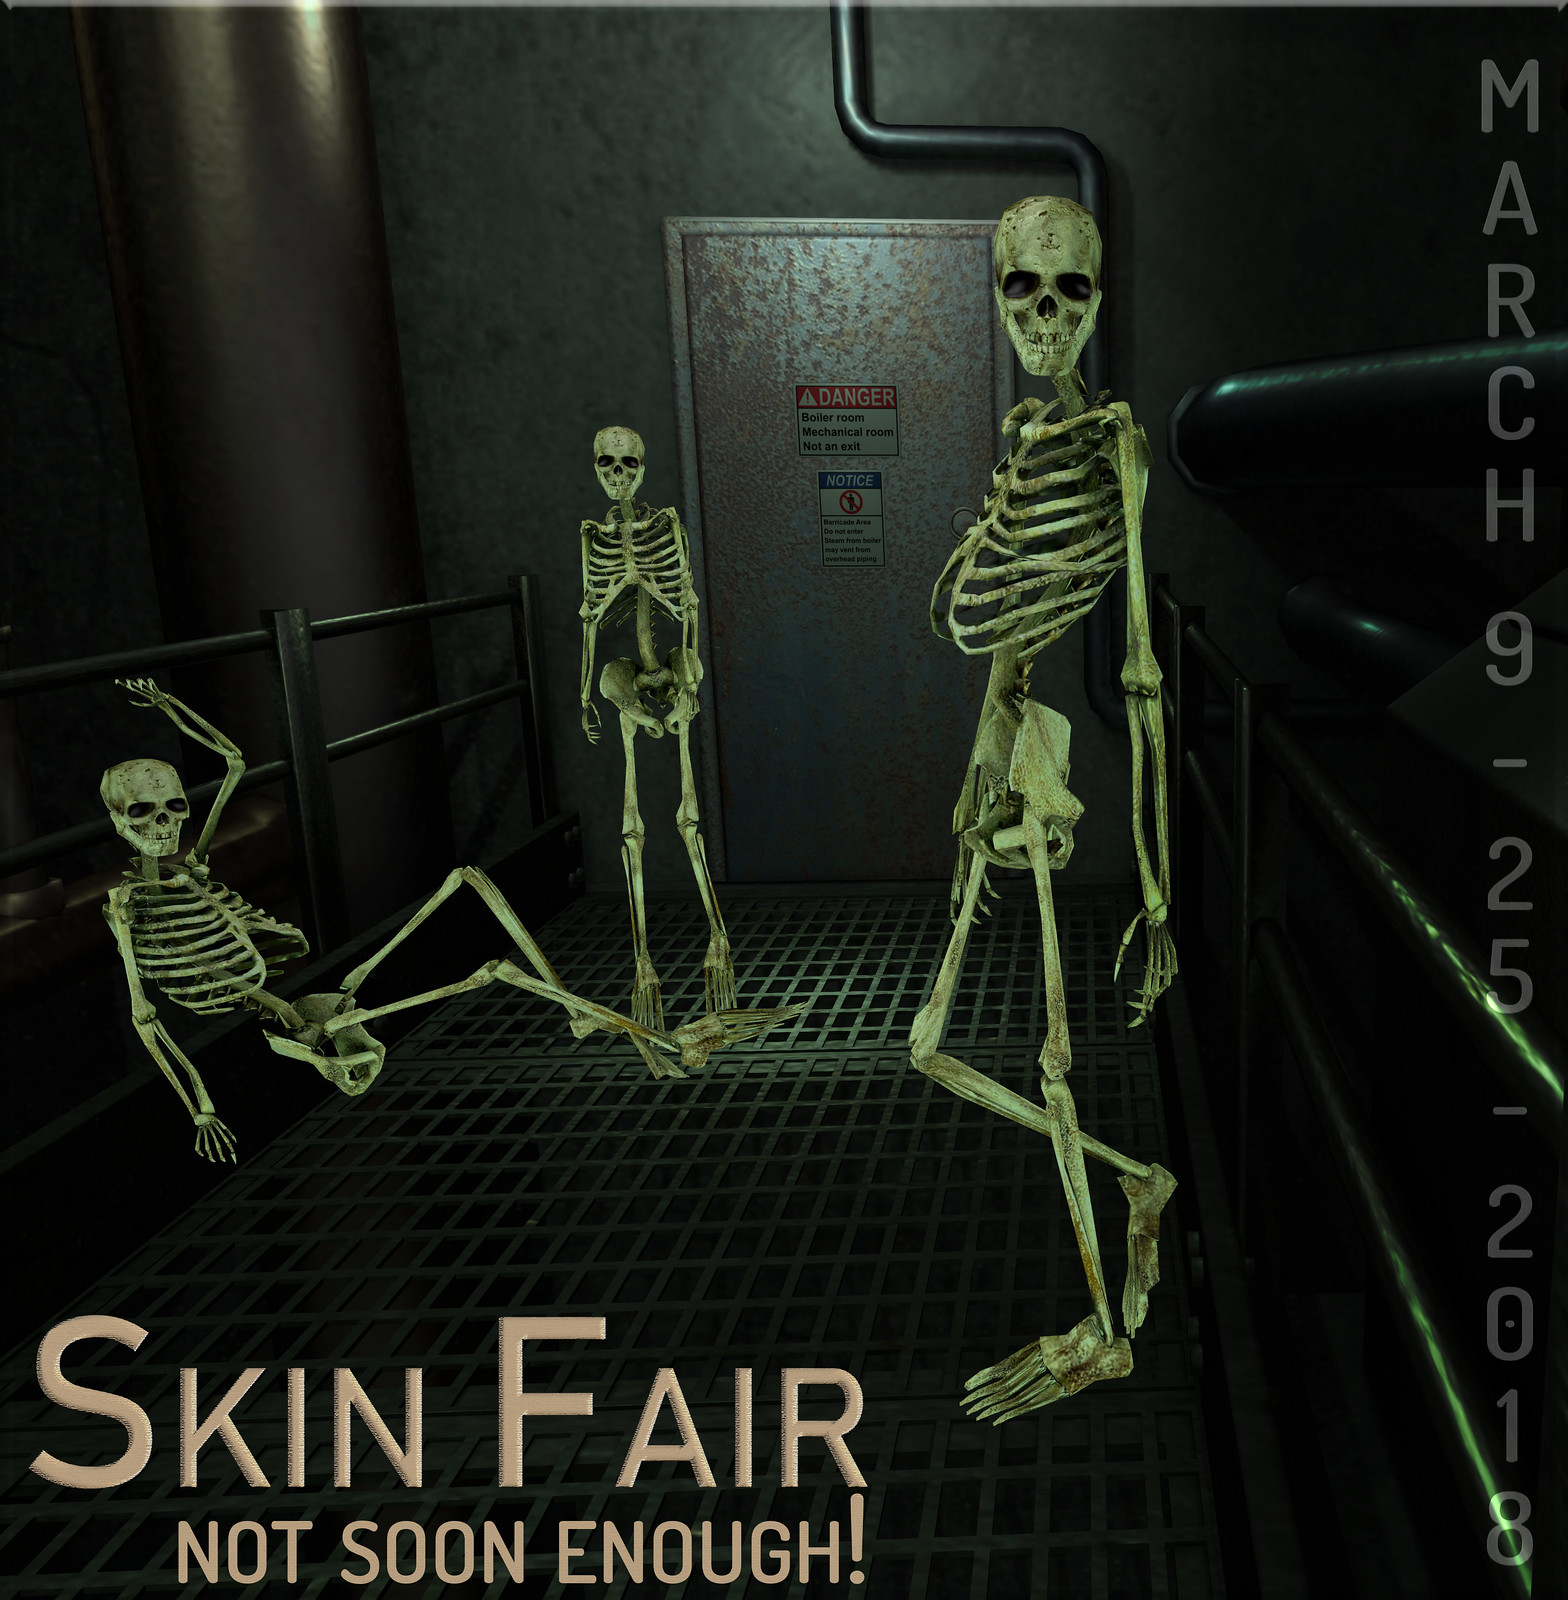 Skin Fair - Not Soon Enough